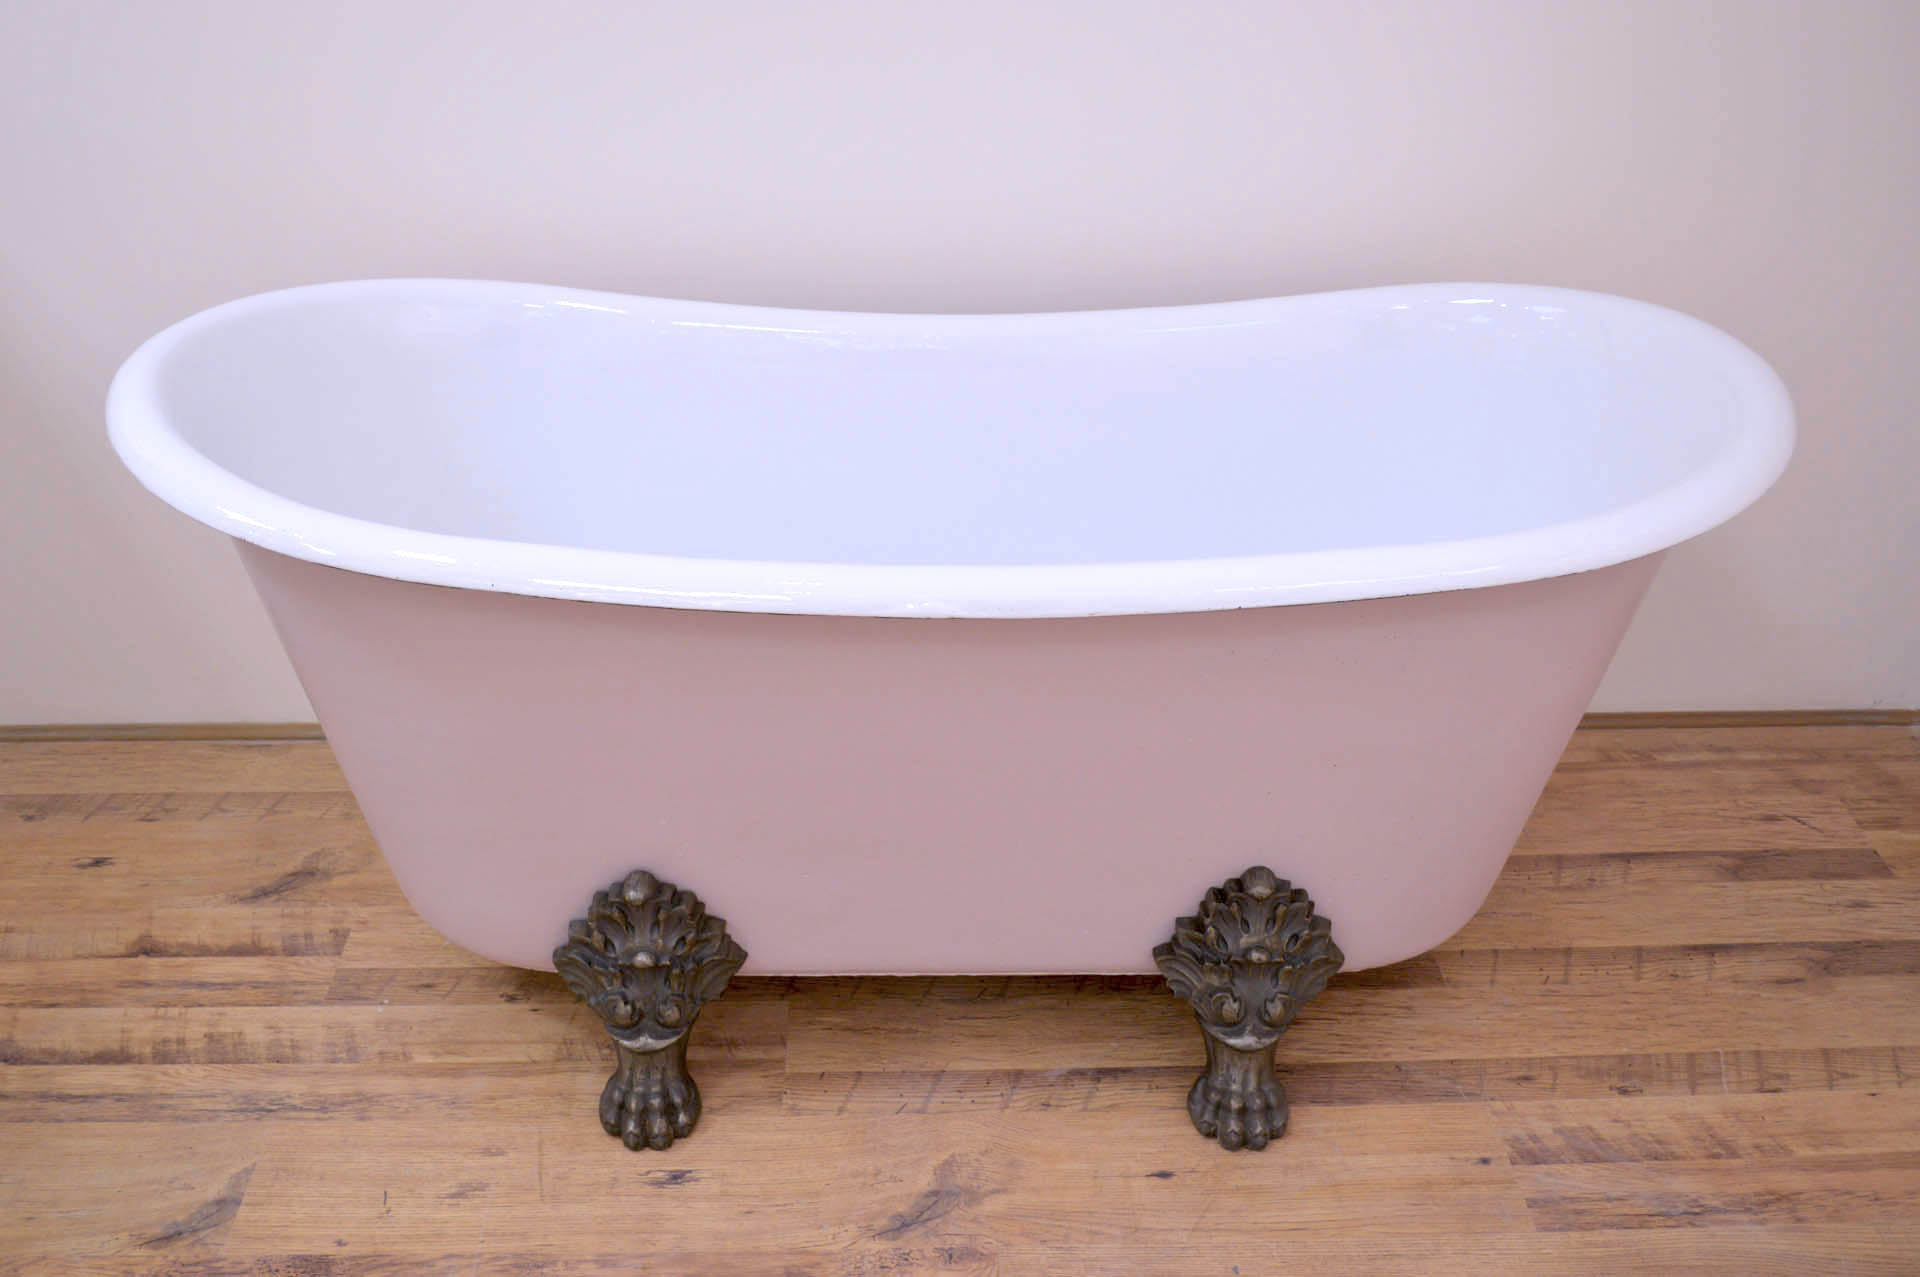 Charming Cast Iron Baths For Sale Ideas - Bathroom with Bathtub ...